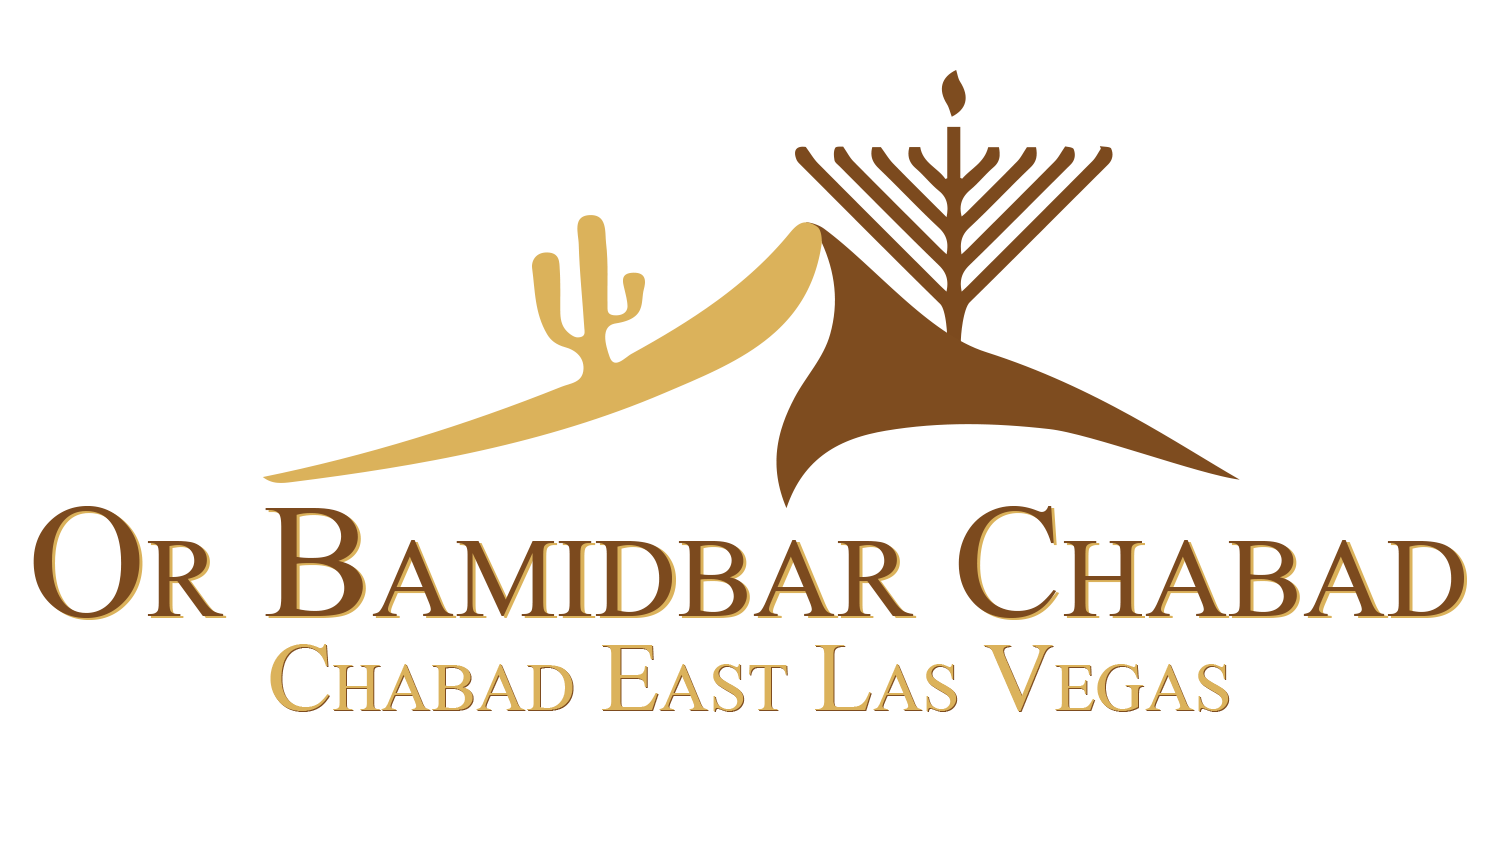 Or Bamidbar Chabad - Day of Chesed / Kindness